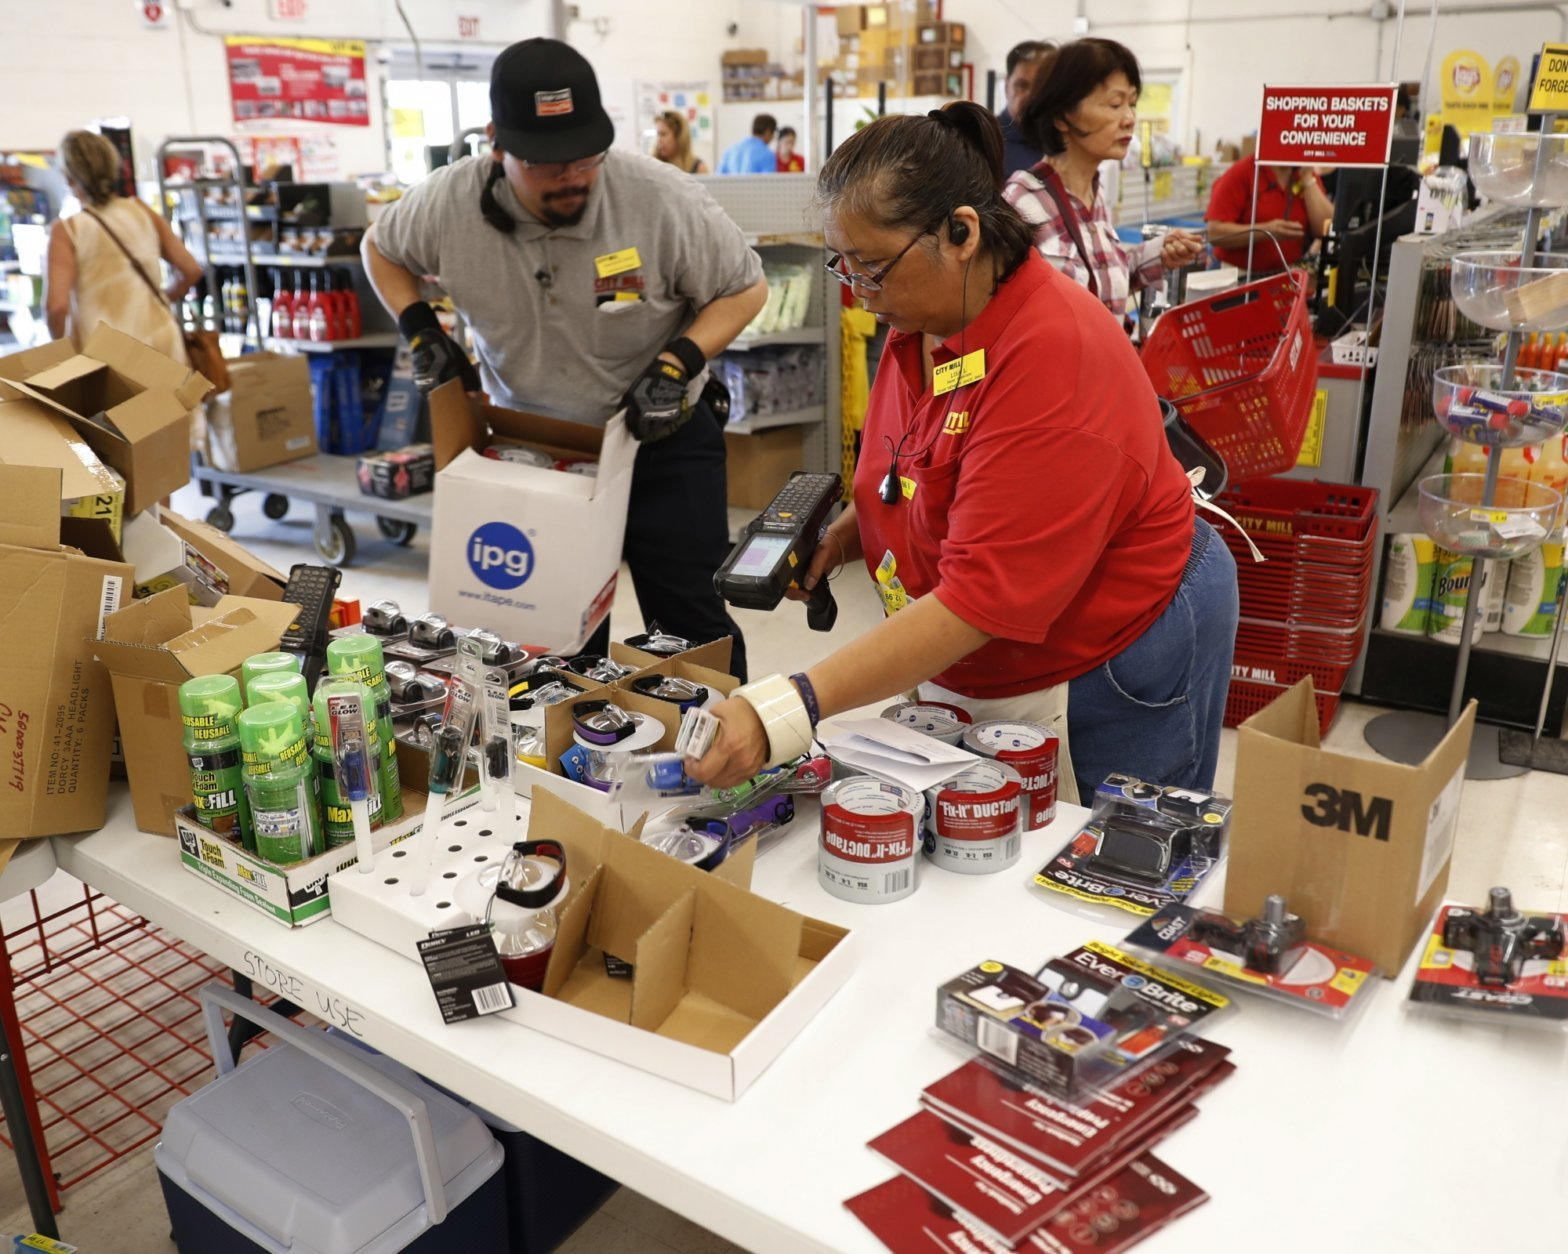 CORRECTS DAY TO AUG. 22- City Mill hardware store sales associates Frank Miller Gascon, left, Lisa Lavilla, fill a table up with duck tape, flashlights, and other hurricane supplies, Wednesday, Aug. 22, 2018, in Honolulu. Gascon said he's been filling the table up every ten minutes as supplies are being swept up by shoppers who are preparing for the approaching Hurricane Lane. Hurricane Lane has weakened as it approaches Hawaii but was still expected to pack a wallop, forecasters said Wednesday. (AP Photo/Marco Garcia)